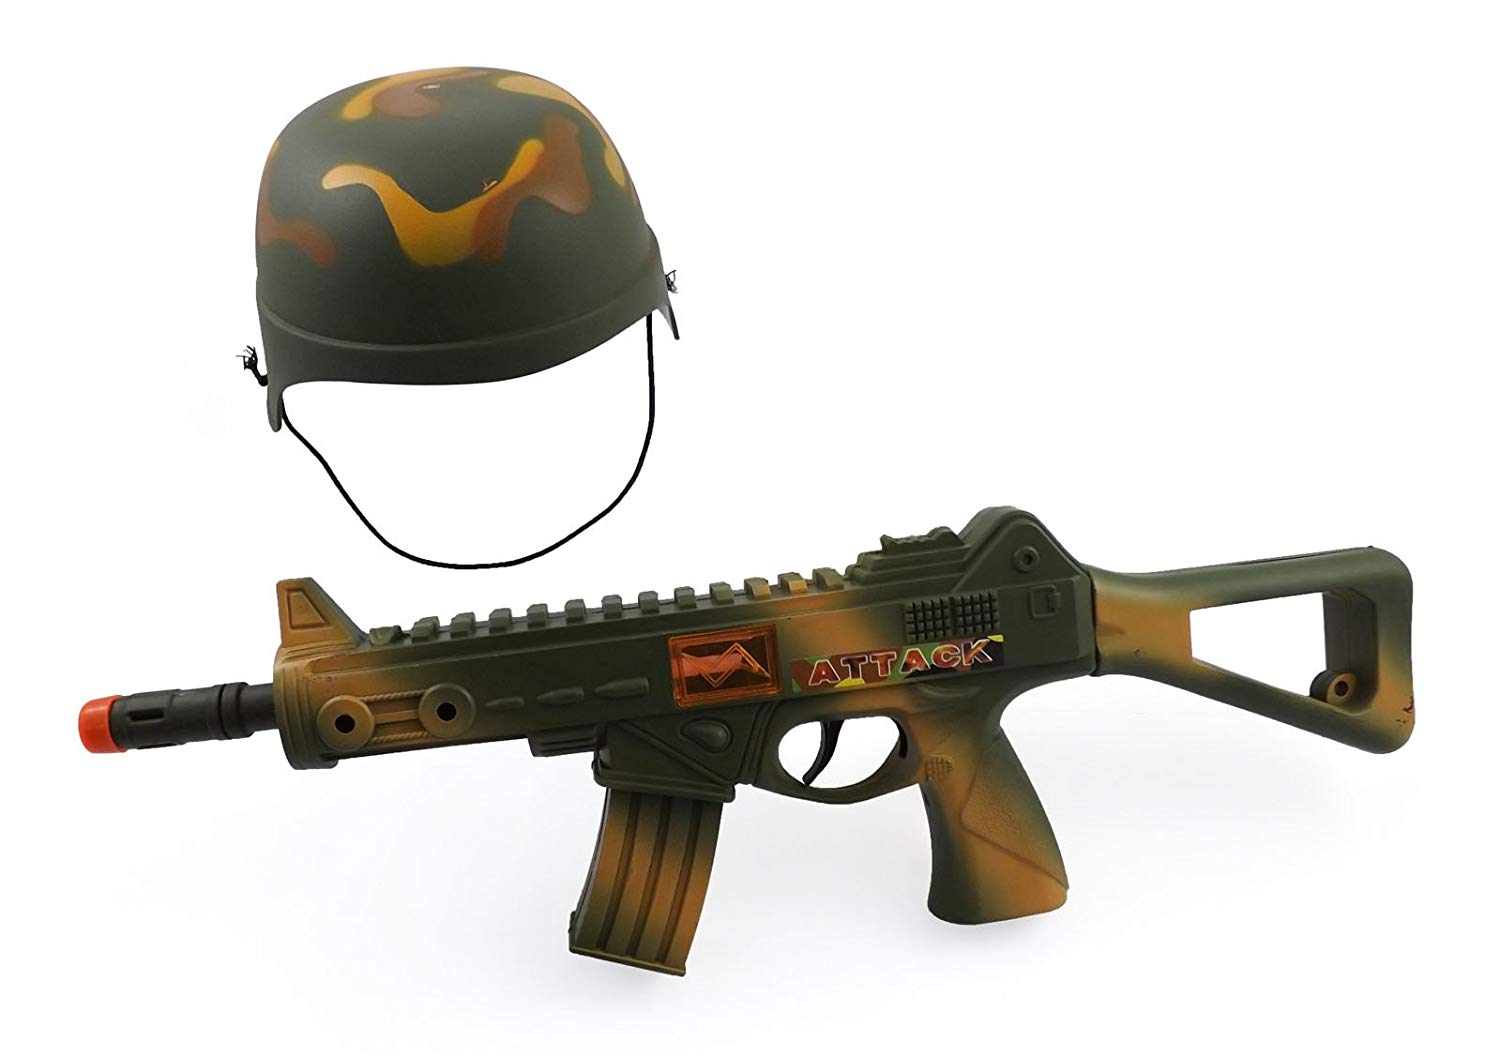 """Camouflage Army Helmet and 16"""" Machine Gun Toy Rifle Military Combat Playset for Kids"""